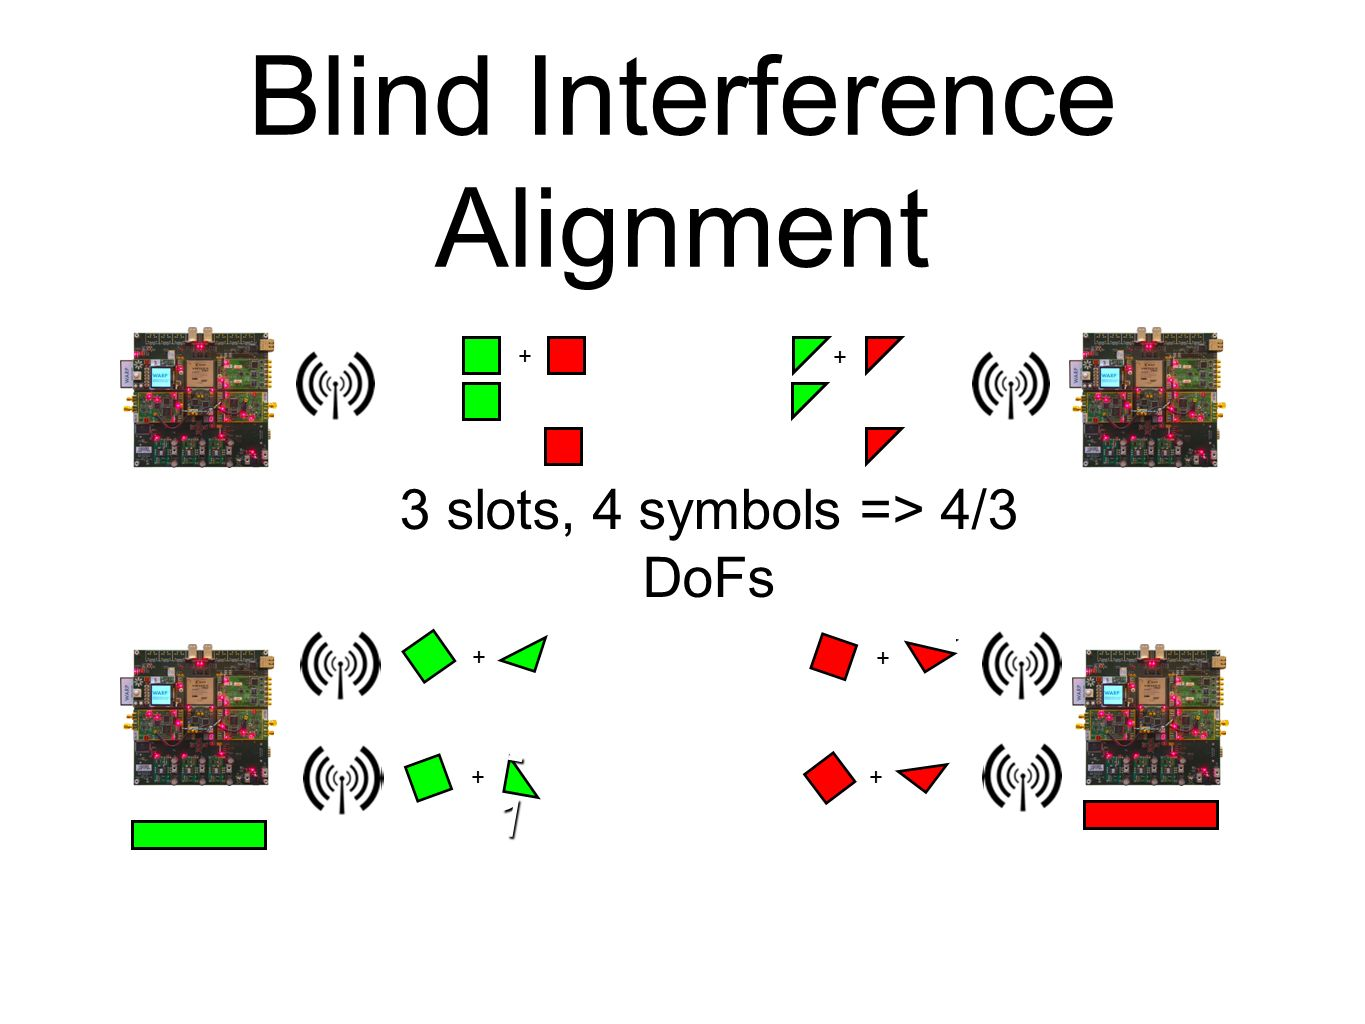 Blind Interference Alignment